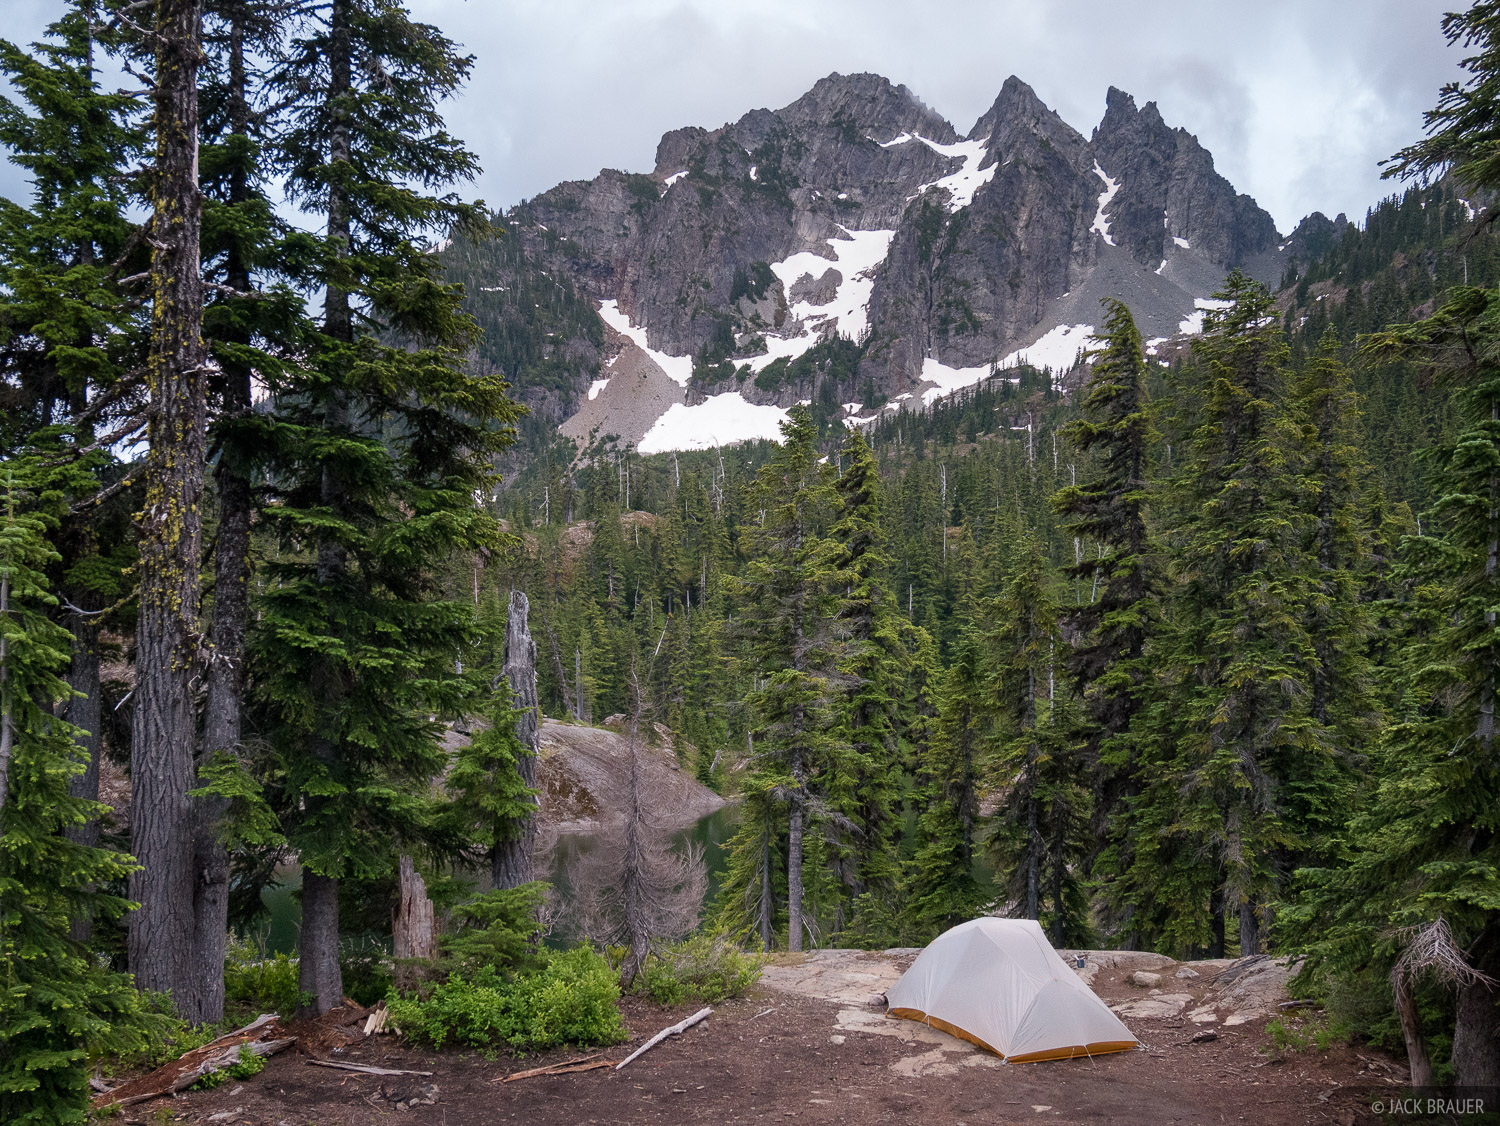 Alpine Lakes Wilderness, Spectacle Lake, Washington, photo